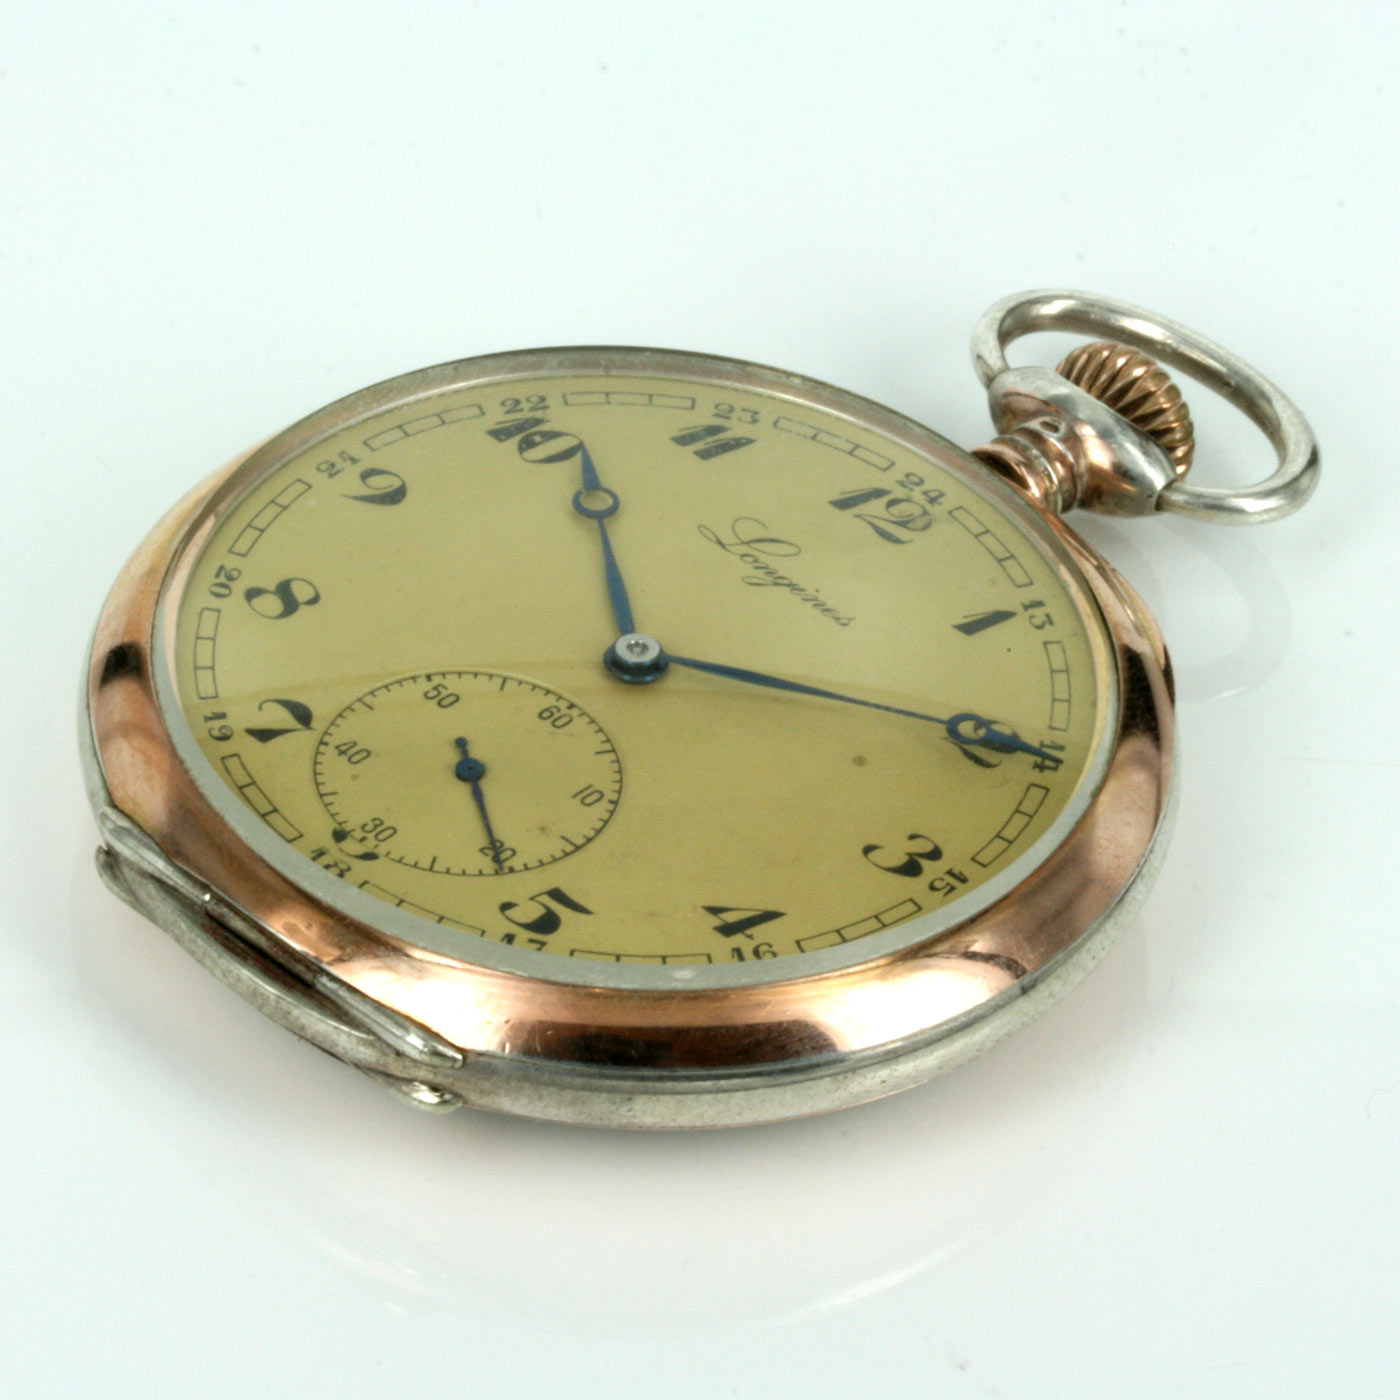 Buy Antique Longines pocket watch in gold & silver. Sold ... | 1400 x 1400 jpeg 169kB